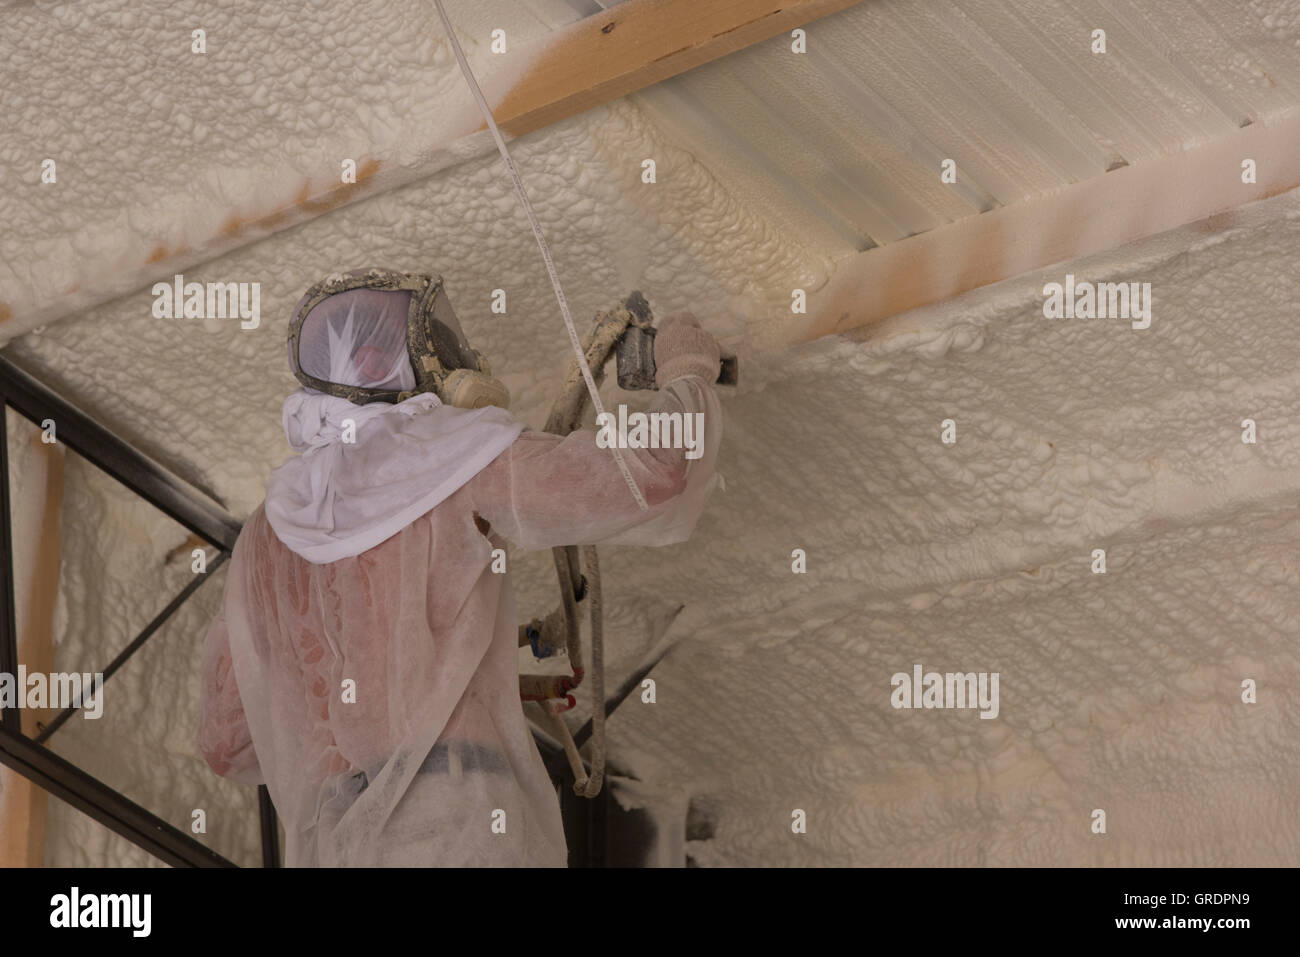 A technician applies open cell foam insulation to a structure's interior for sound control and energy conservation. - Stock Image